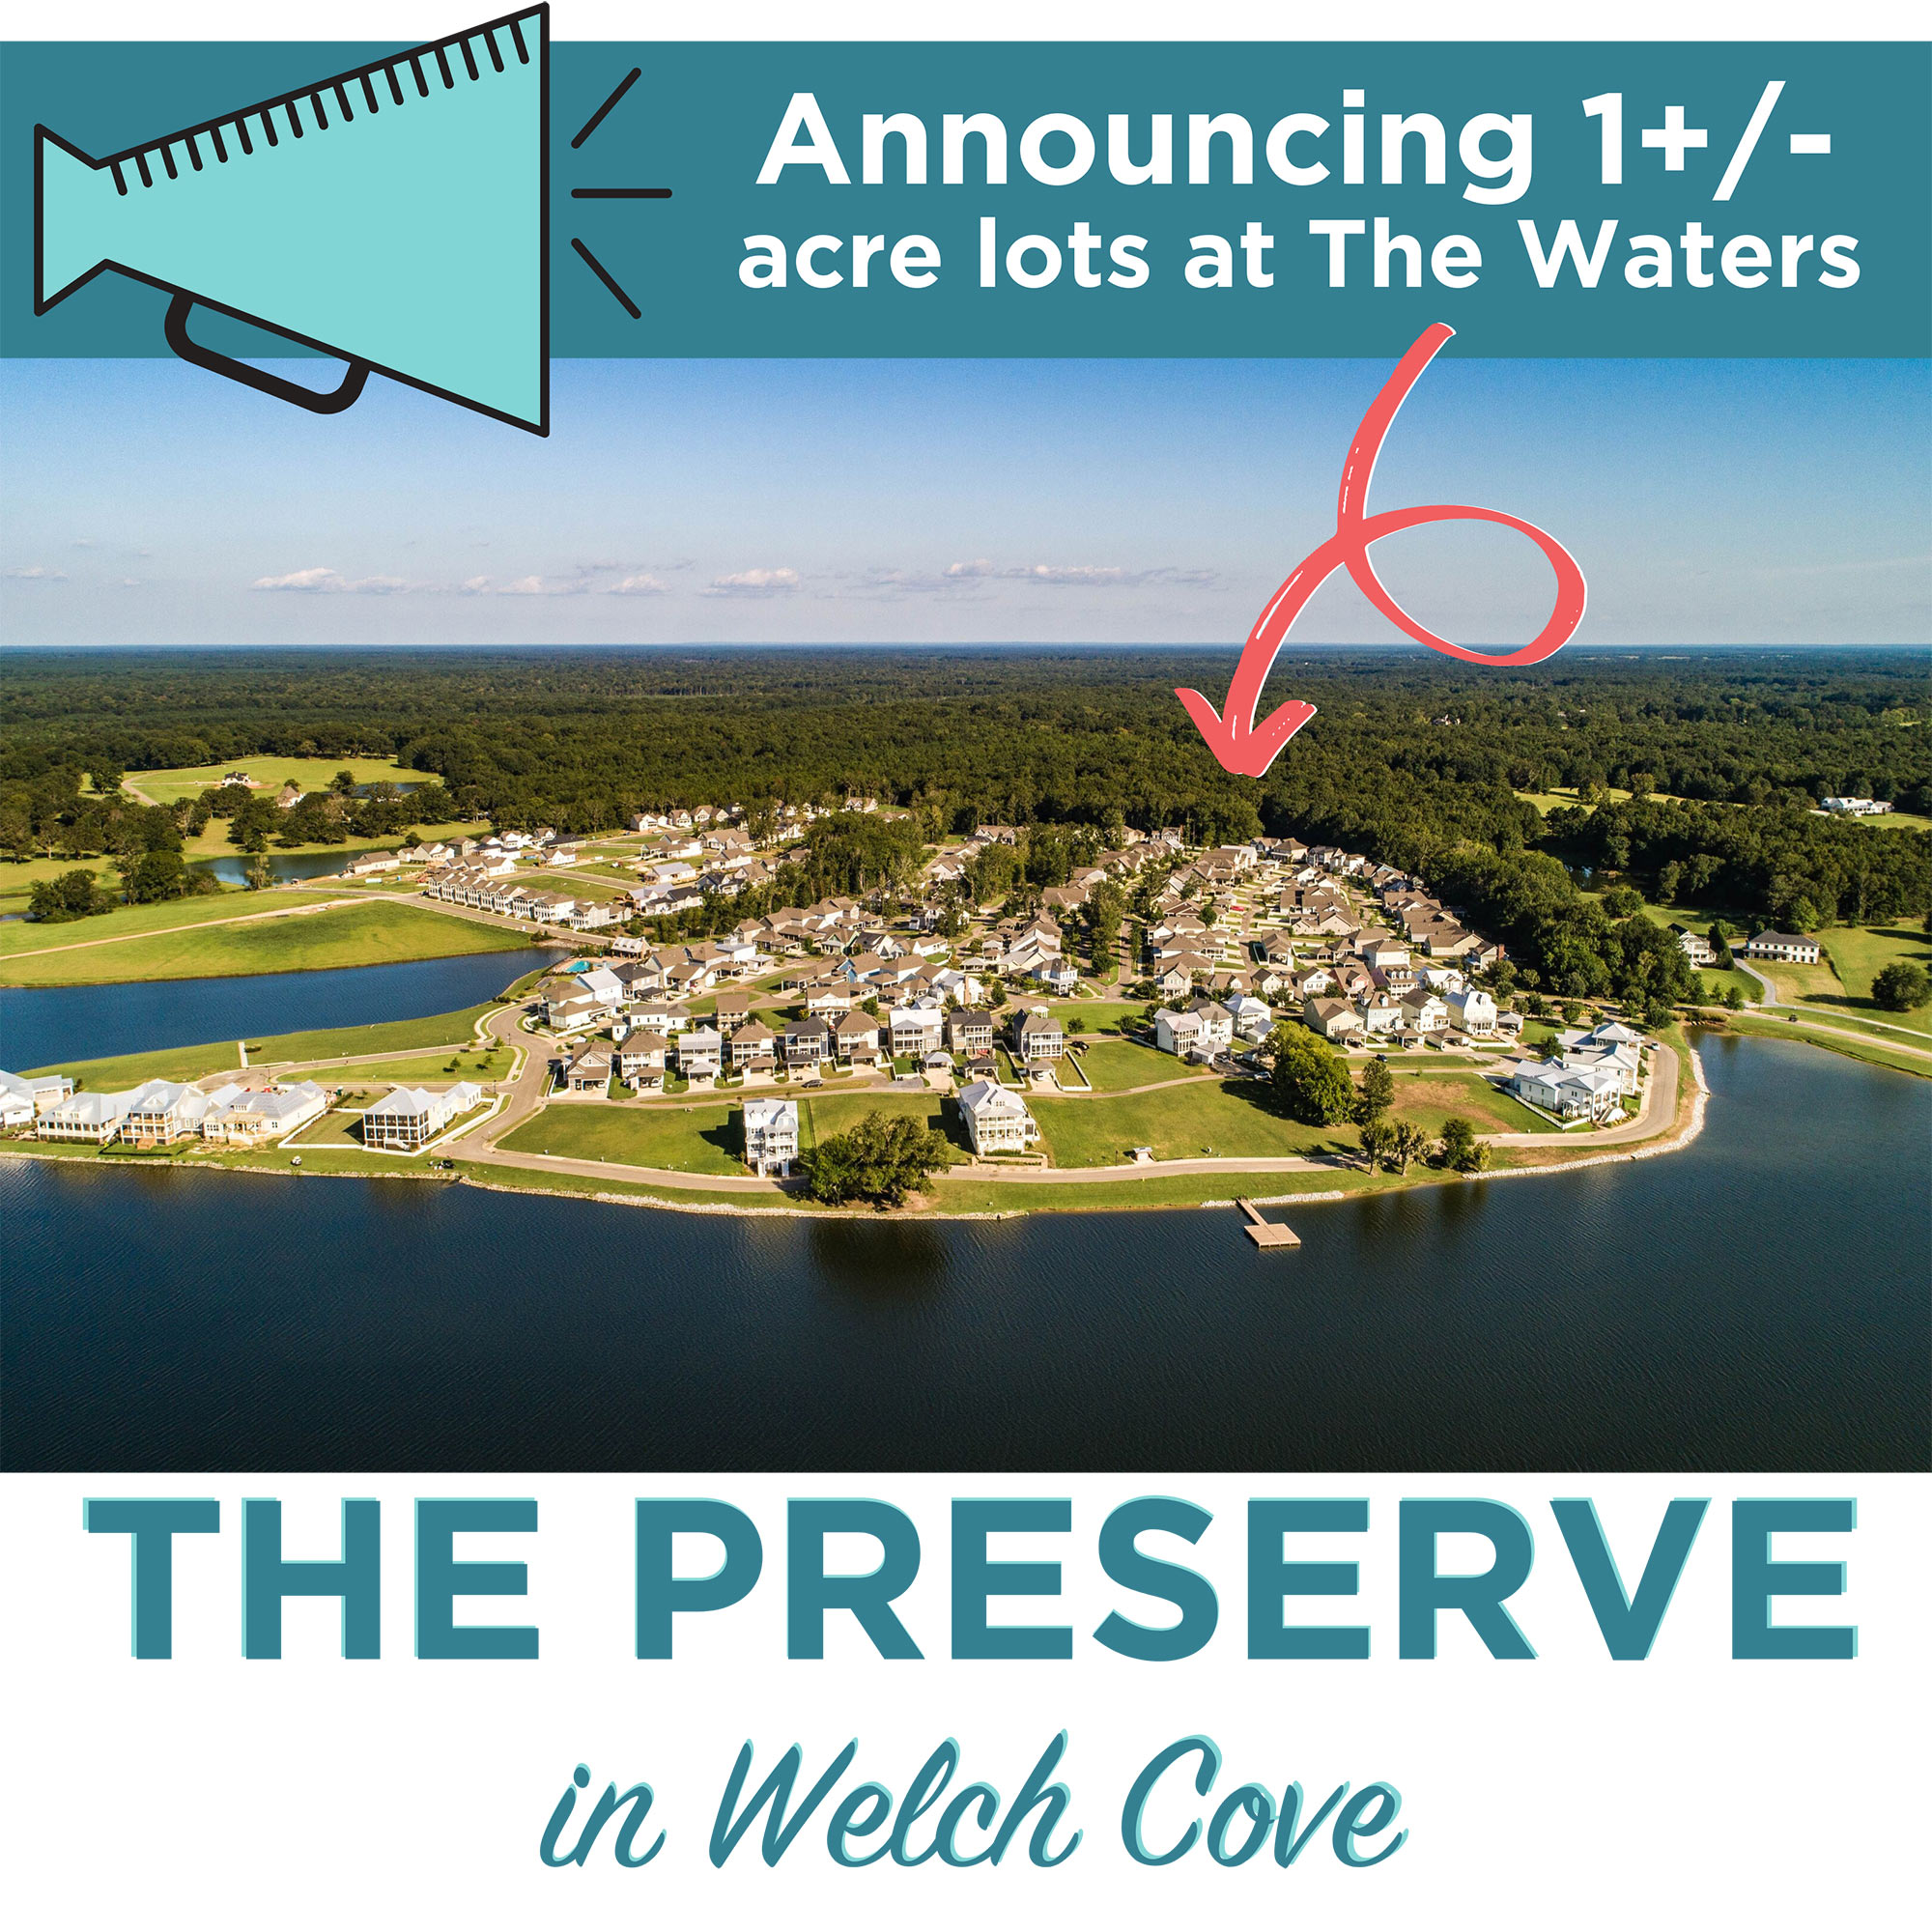 Announcing The Preserve 1+/- Acre Lots at The Waters